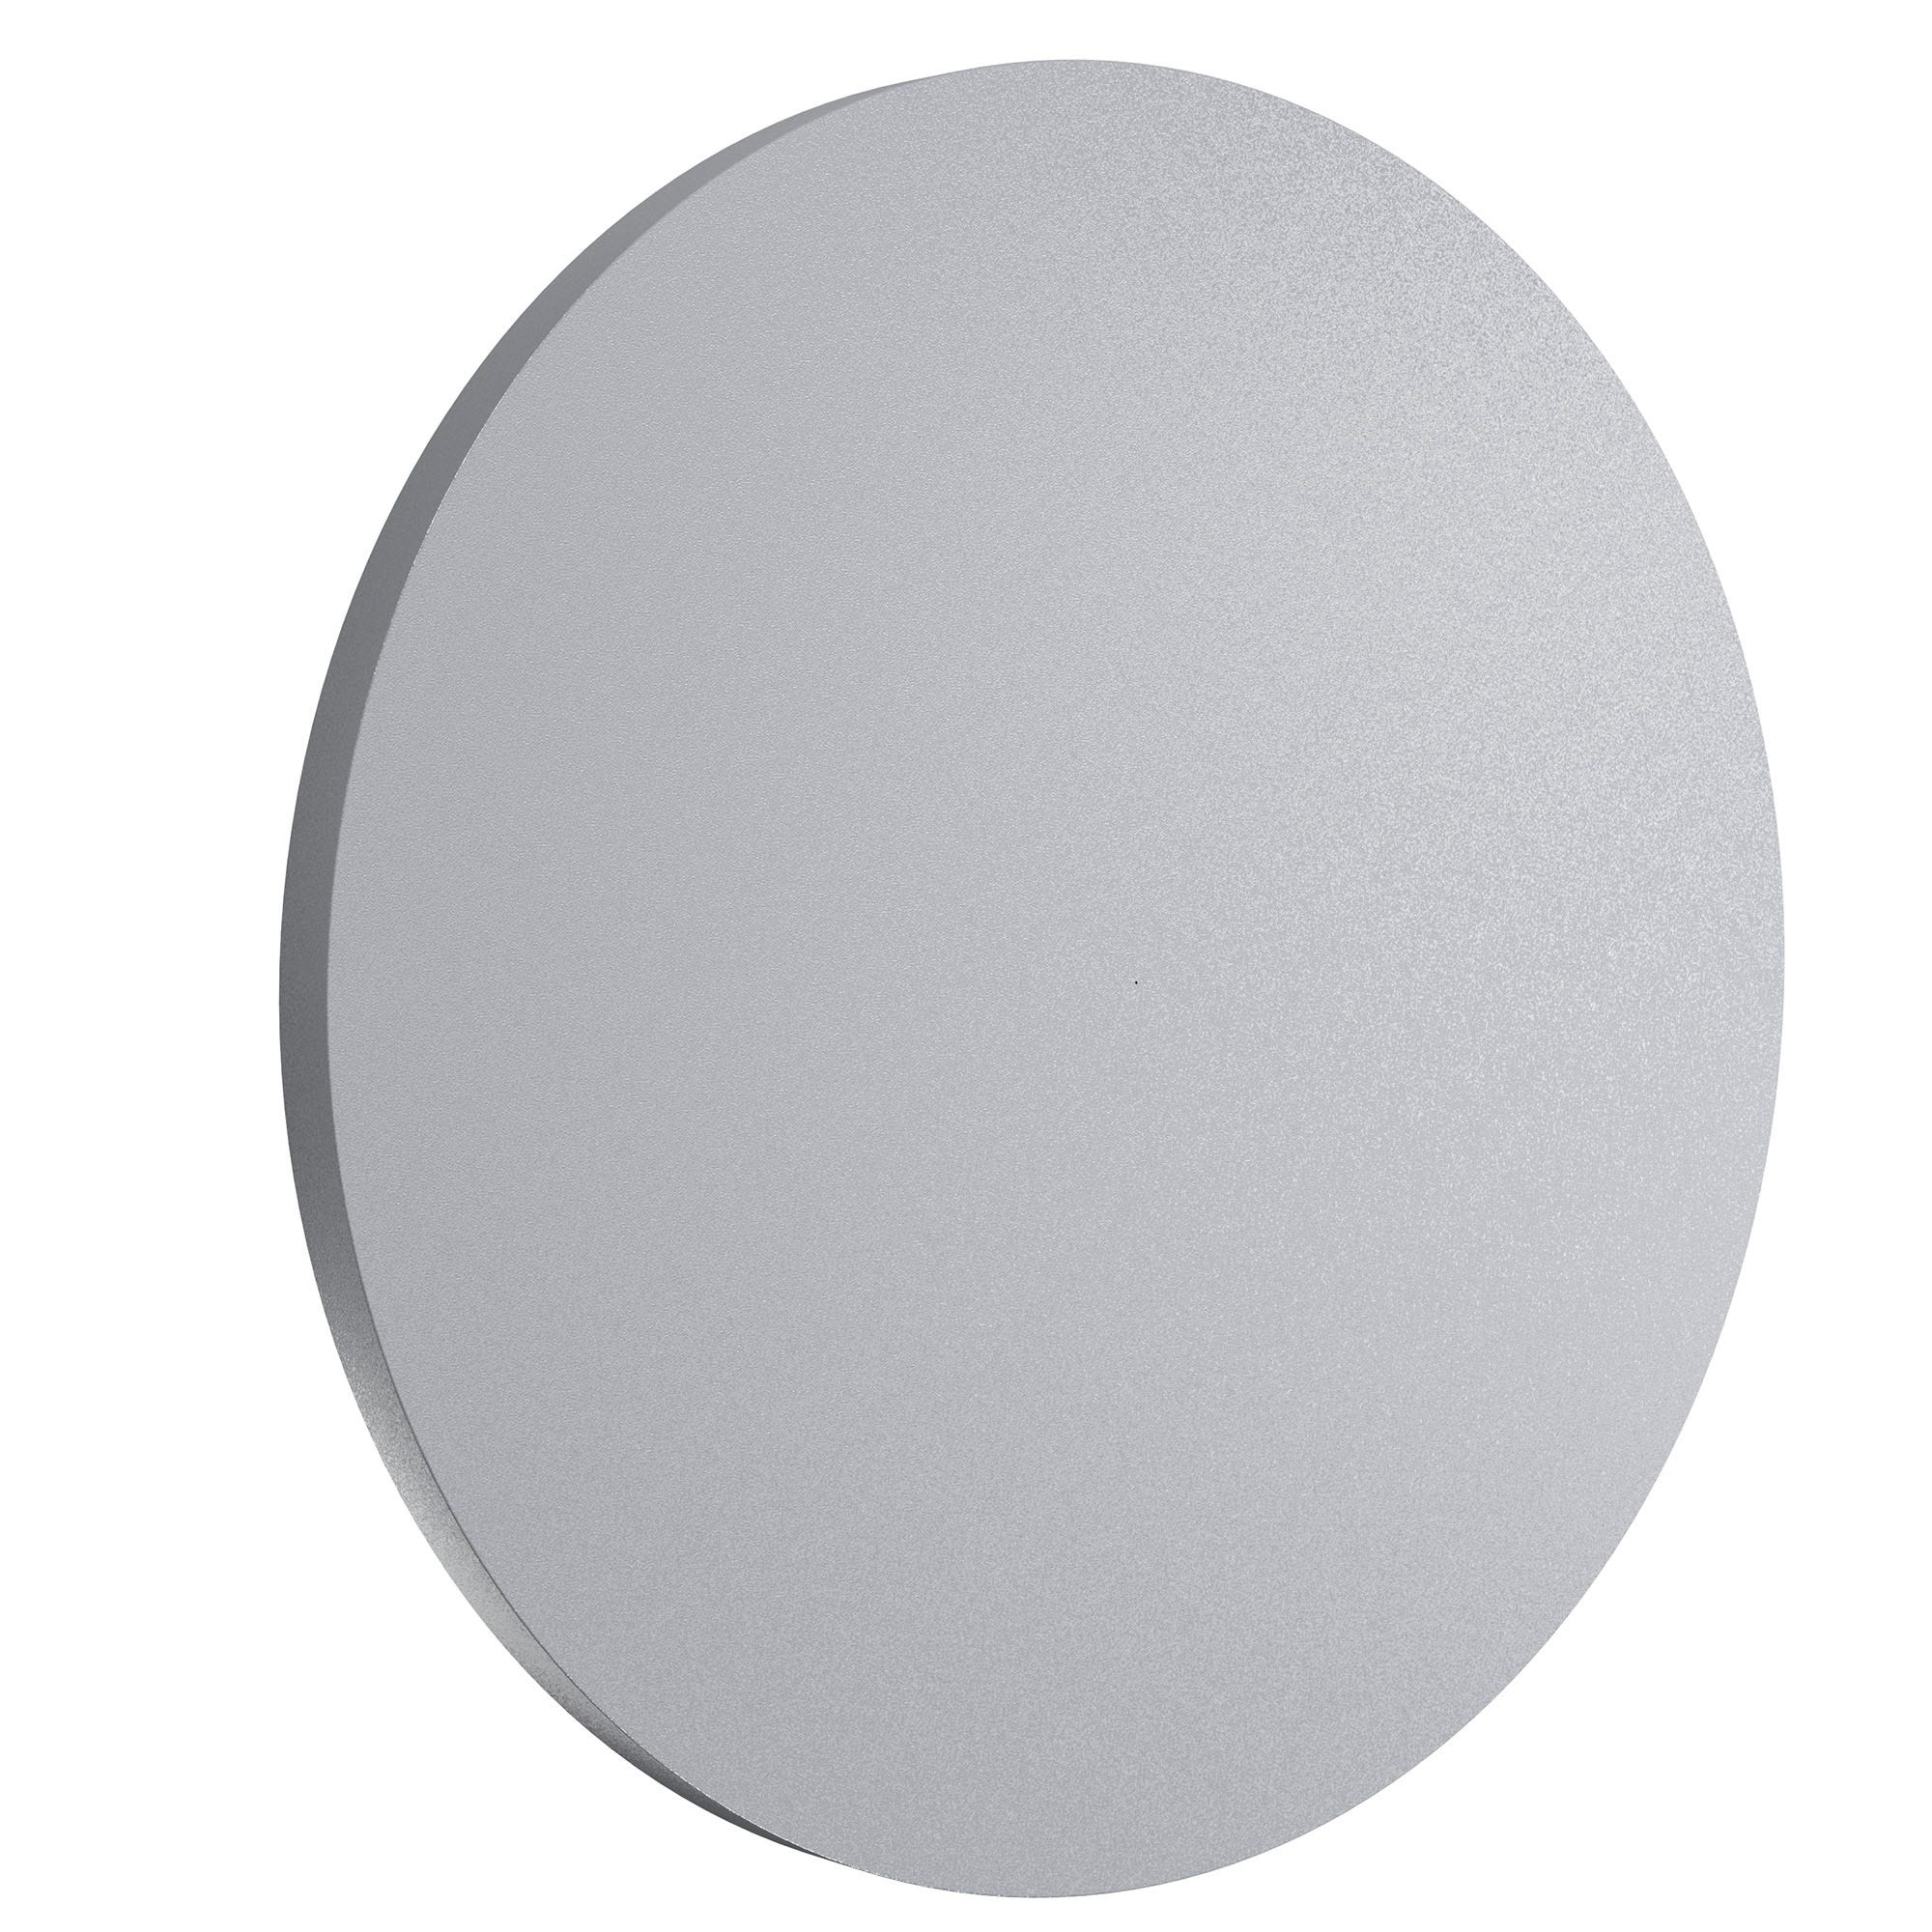 As Shown: Camouflage Wall Light Grey.